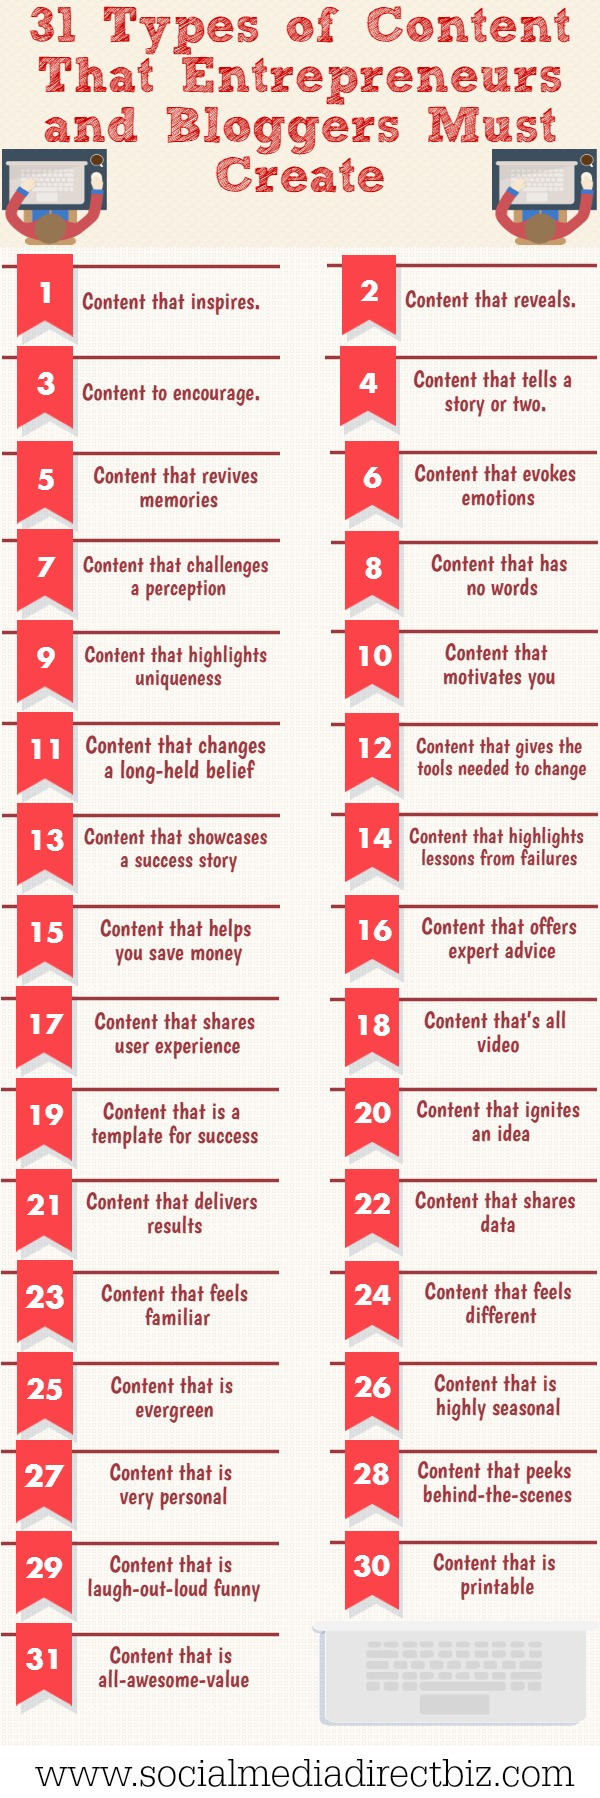 31 types of content that entrepreneurs must create Infographic